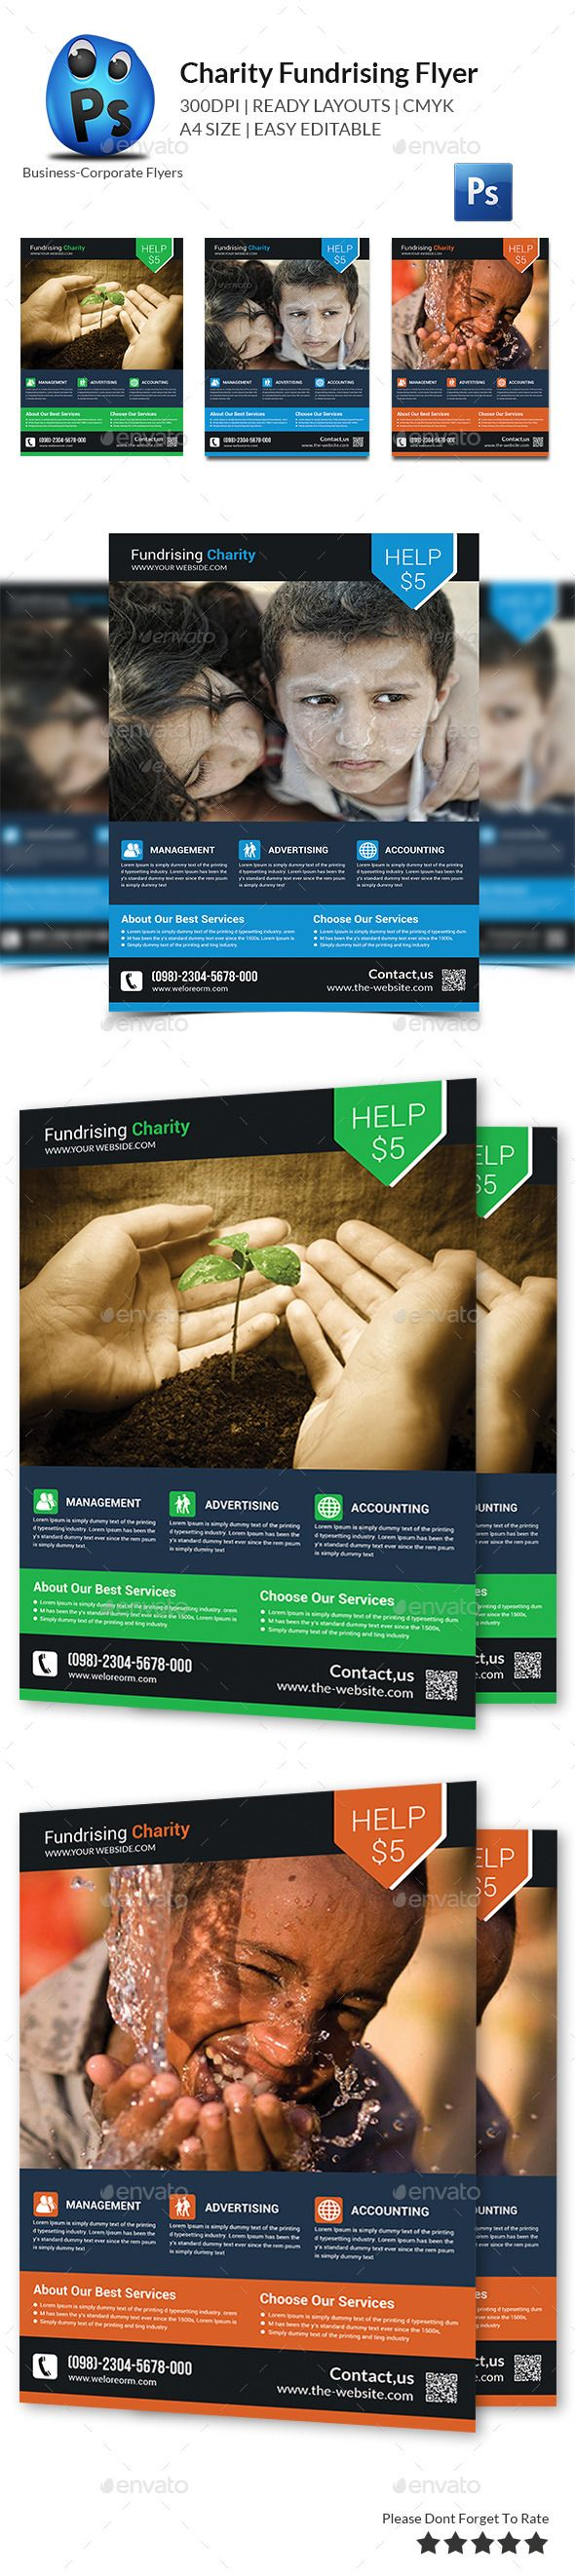 Charity Fundraising Flyer Templates  Flyer Template Fundraising